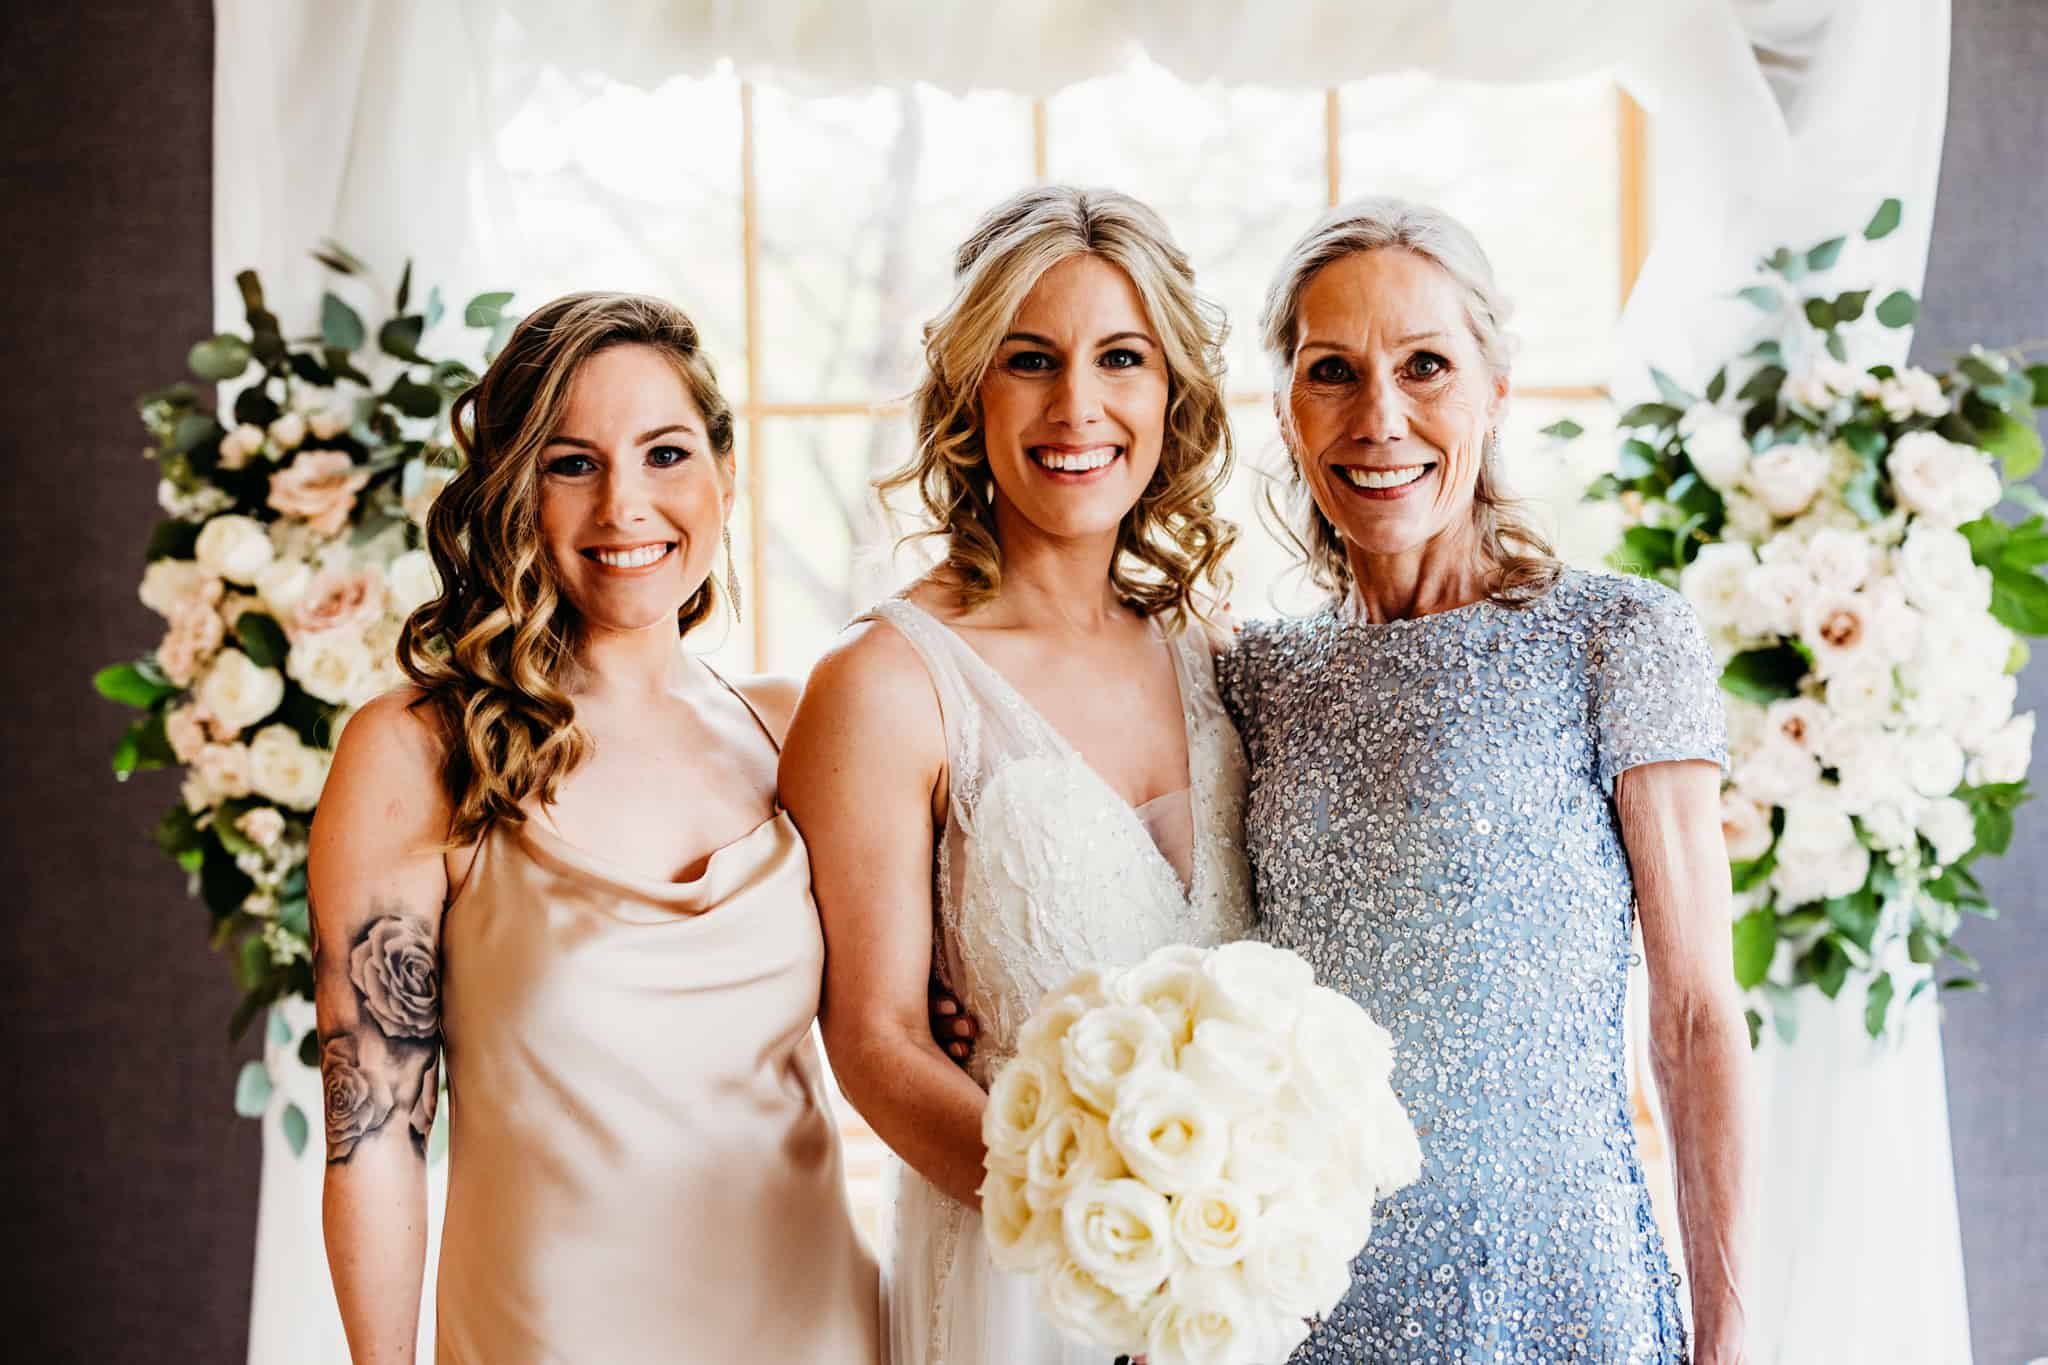 Bride, her mom and sister smile together at the camera at a hazeltine national golf club wedding